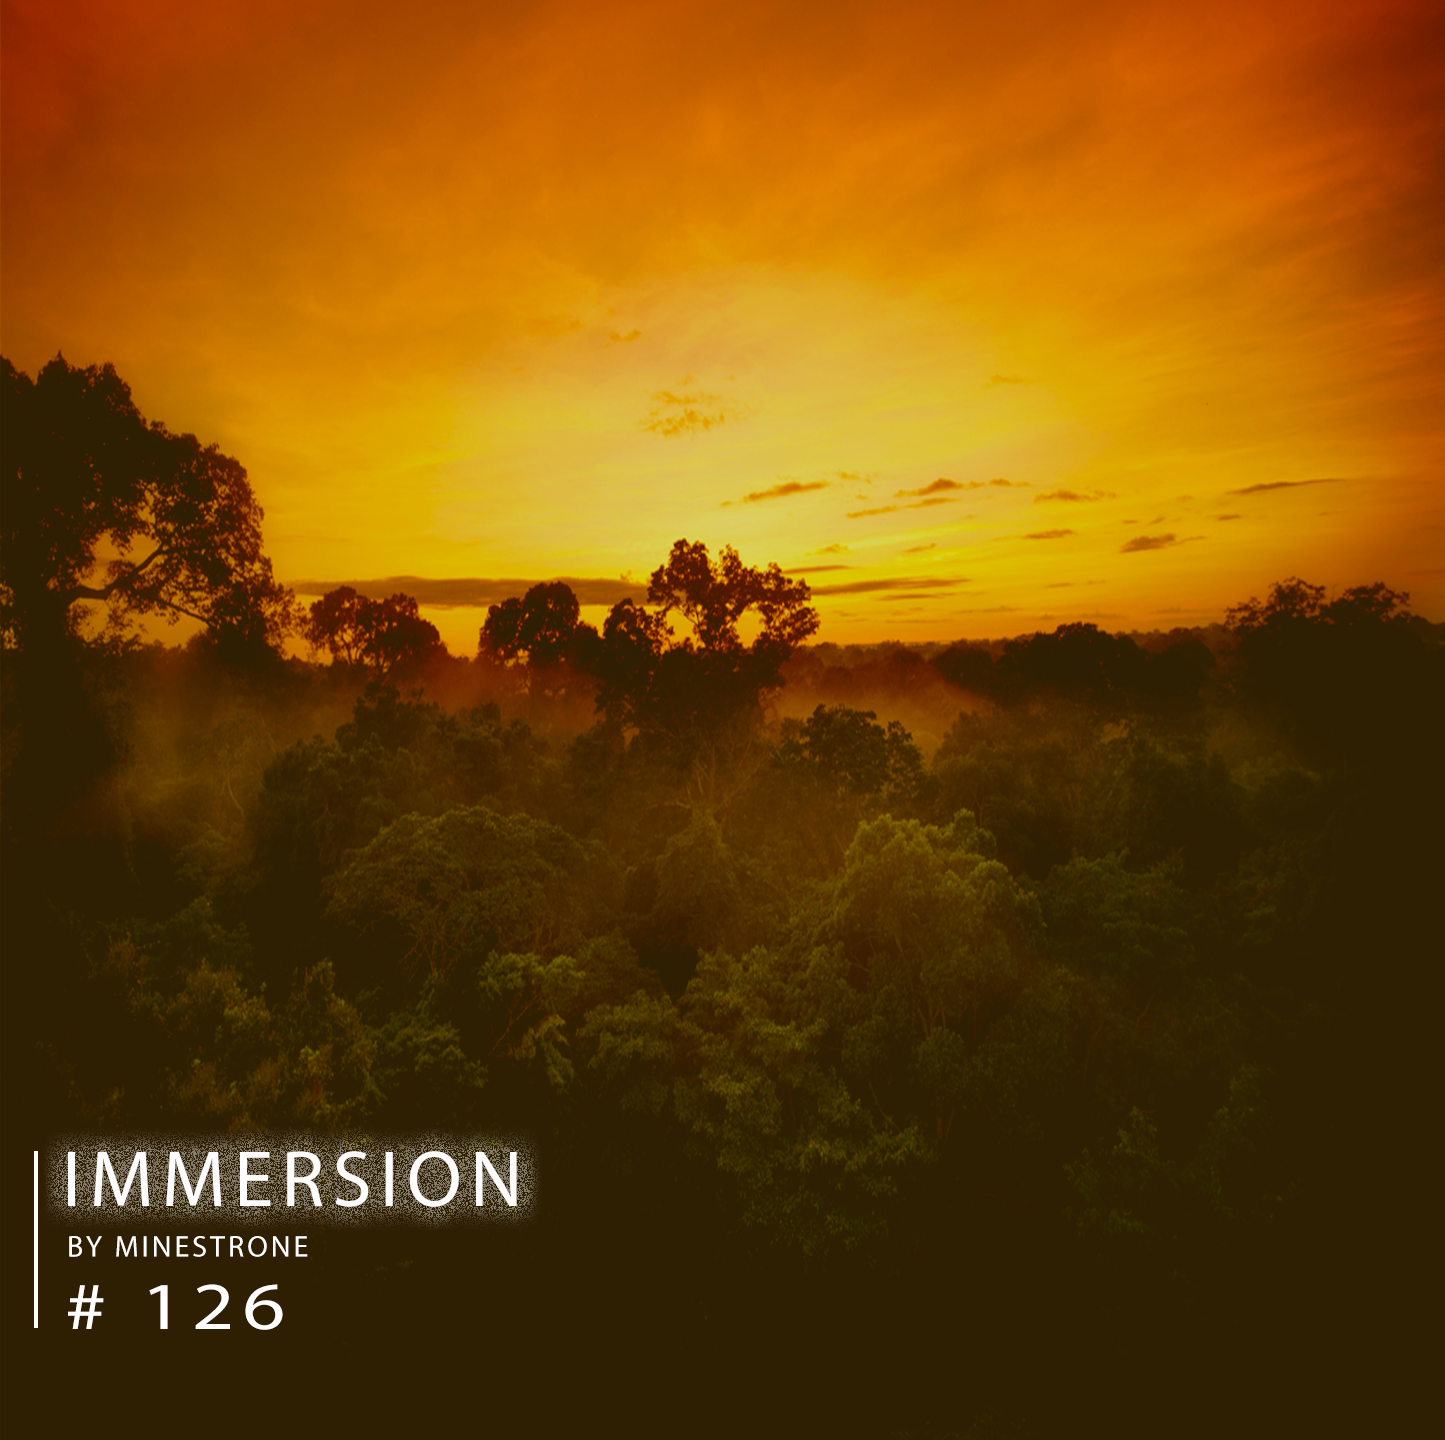 Immersion :: Episode 126 (aired on November 4th, 2019) banner logo